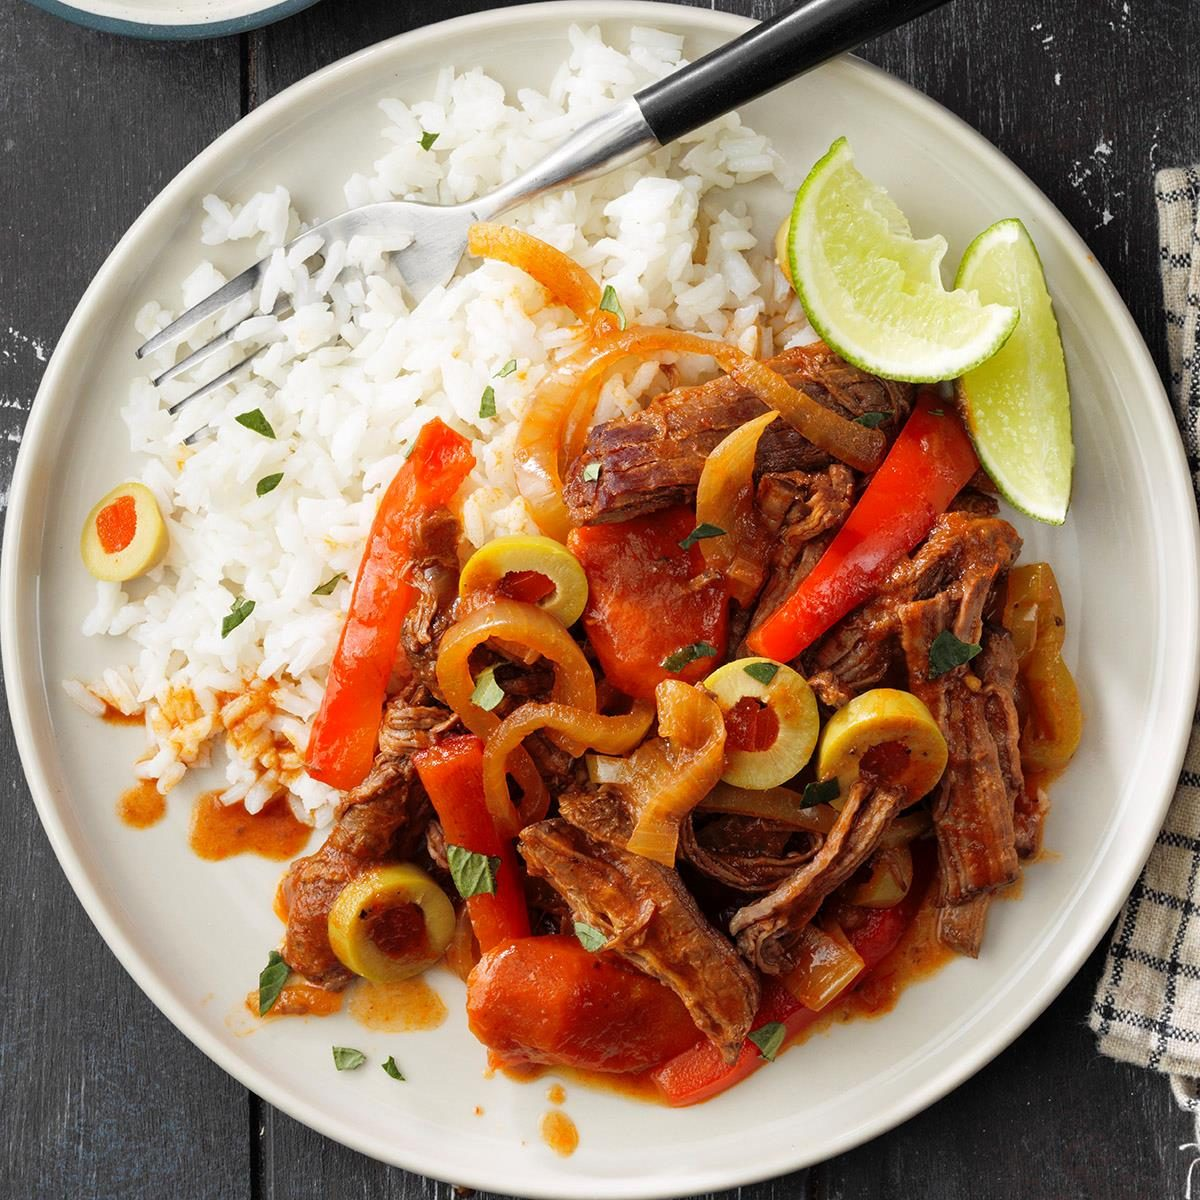 October 11: Slow-Cooked Ropa Vieja